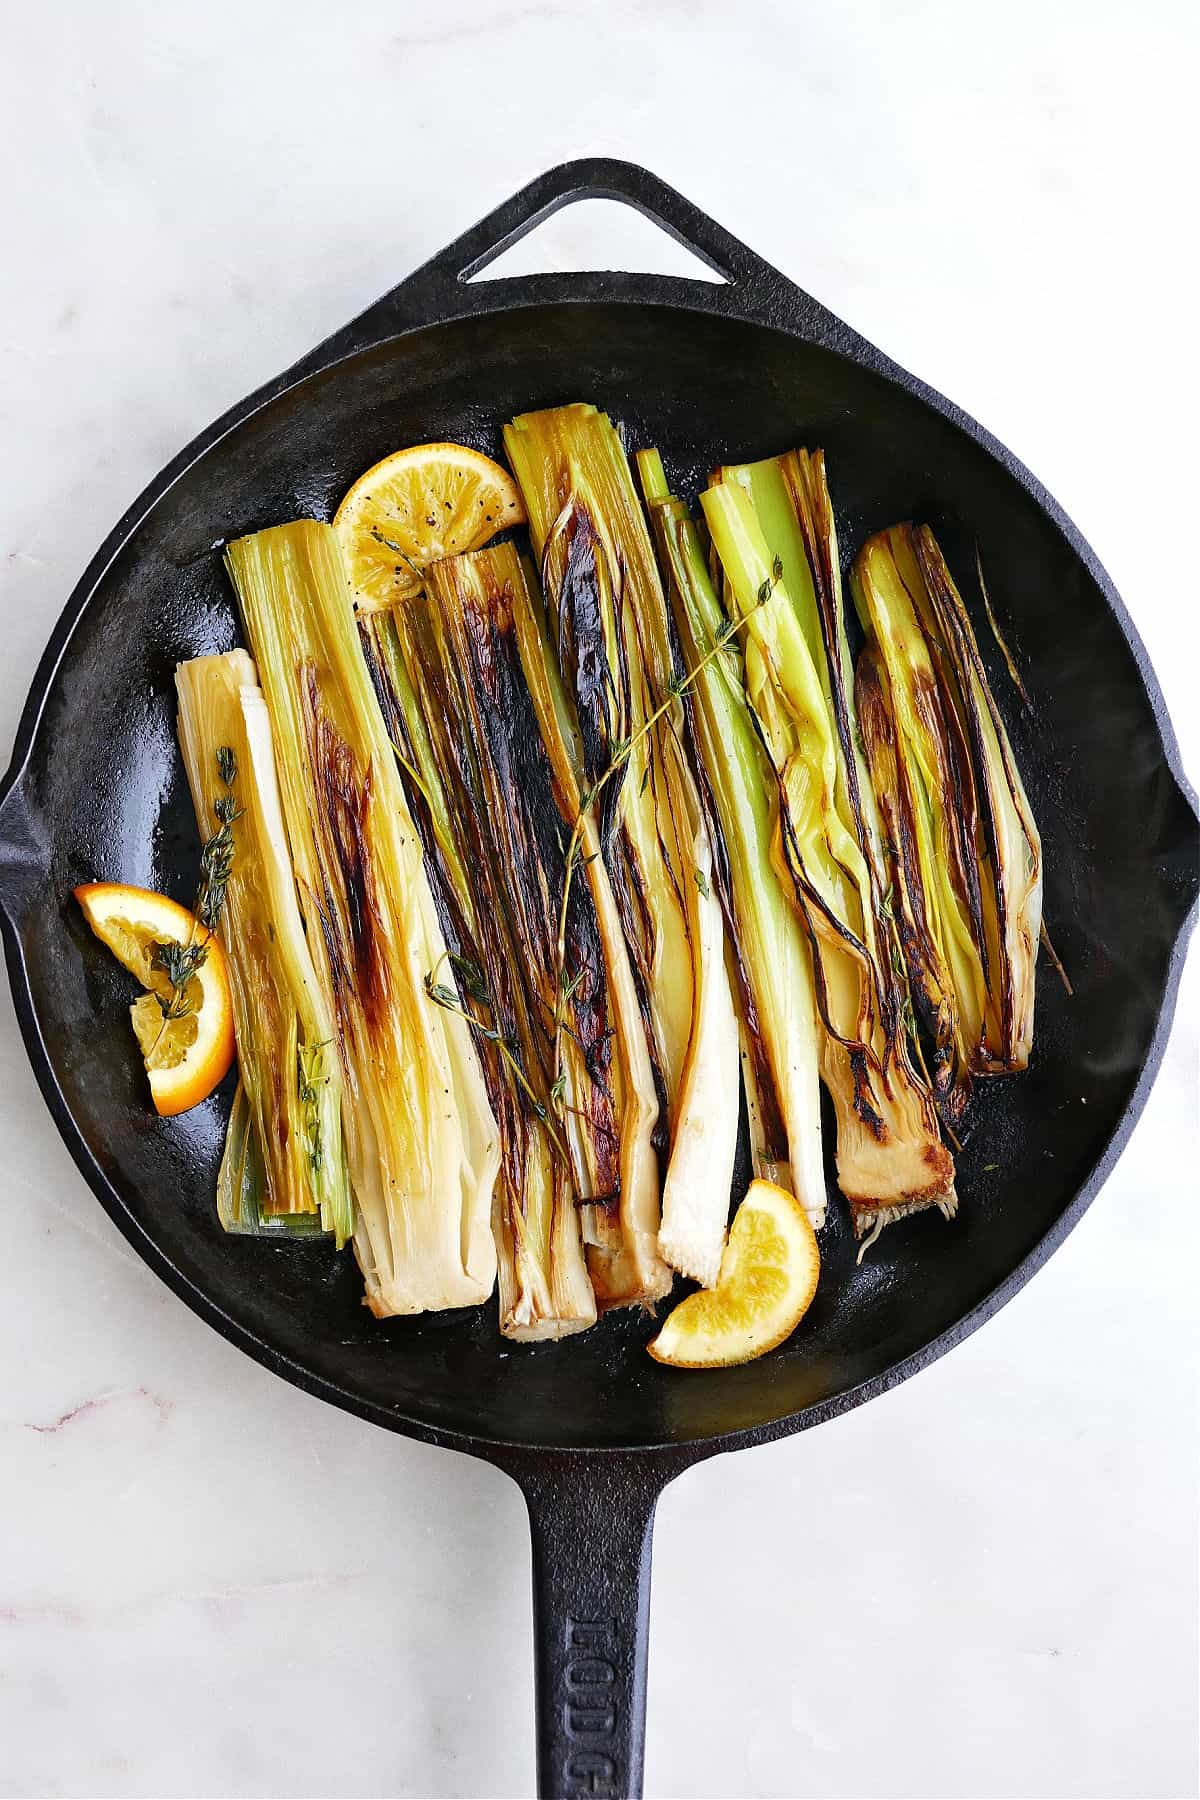 caramelized leeks in a cast iron skillet next to orange slices and thyme sprigs